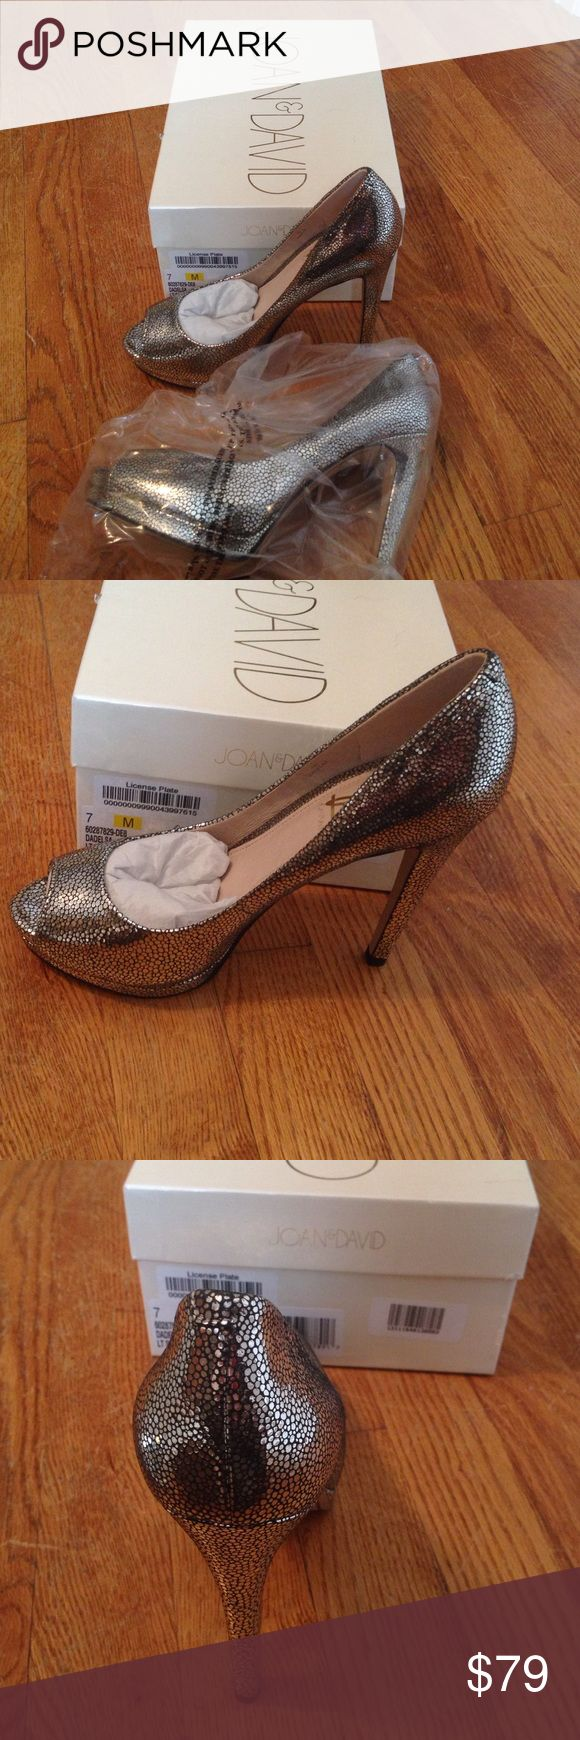 Brand New Joan & David silver heels Brand new in box Joan & David silver high heels size 7. Joan & David Shoes Heels